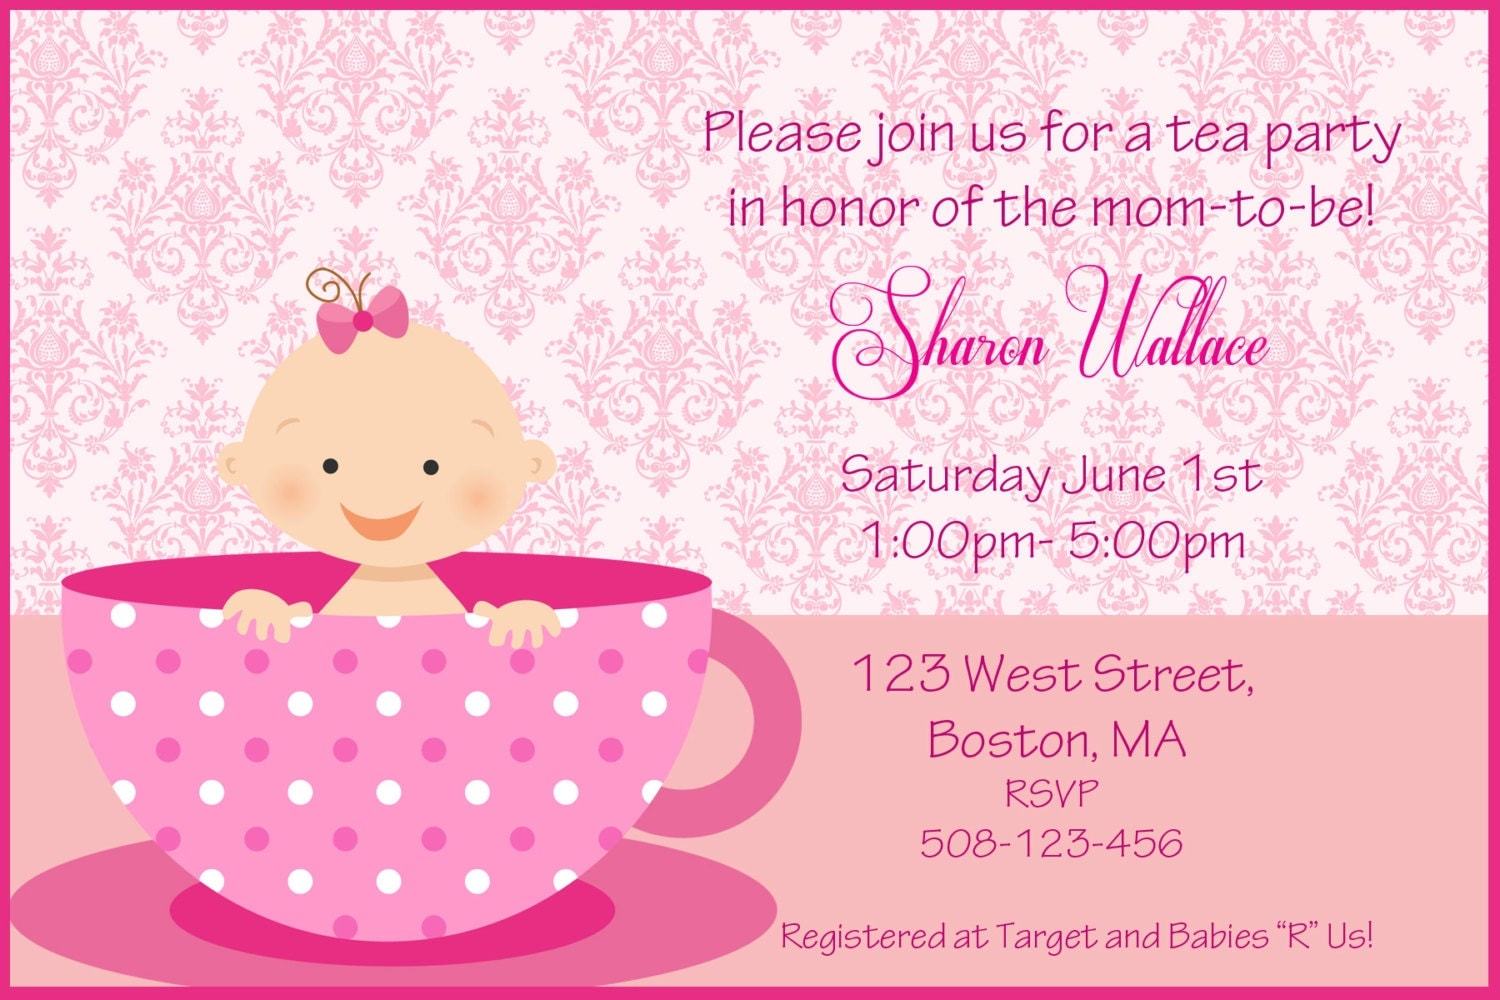 Tea Party Baby Shower Invitation Girl and Boy version – Baby Shower Tea Party Invitation